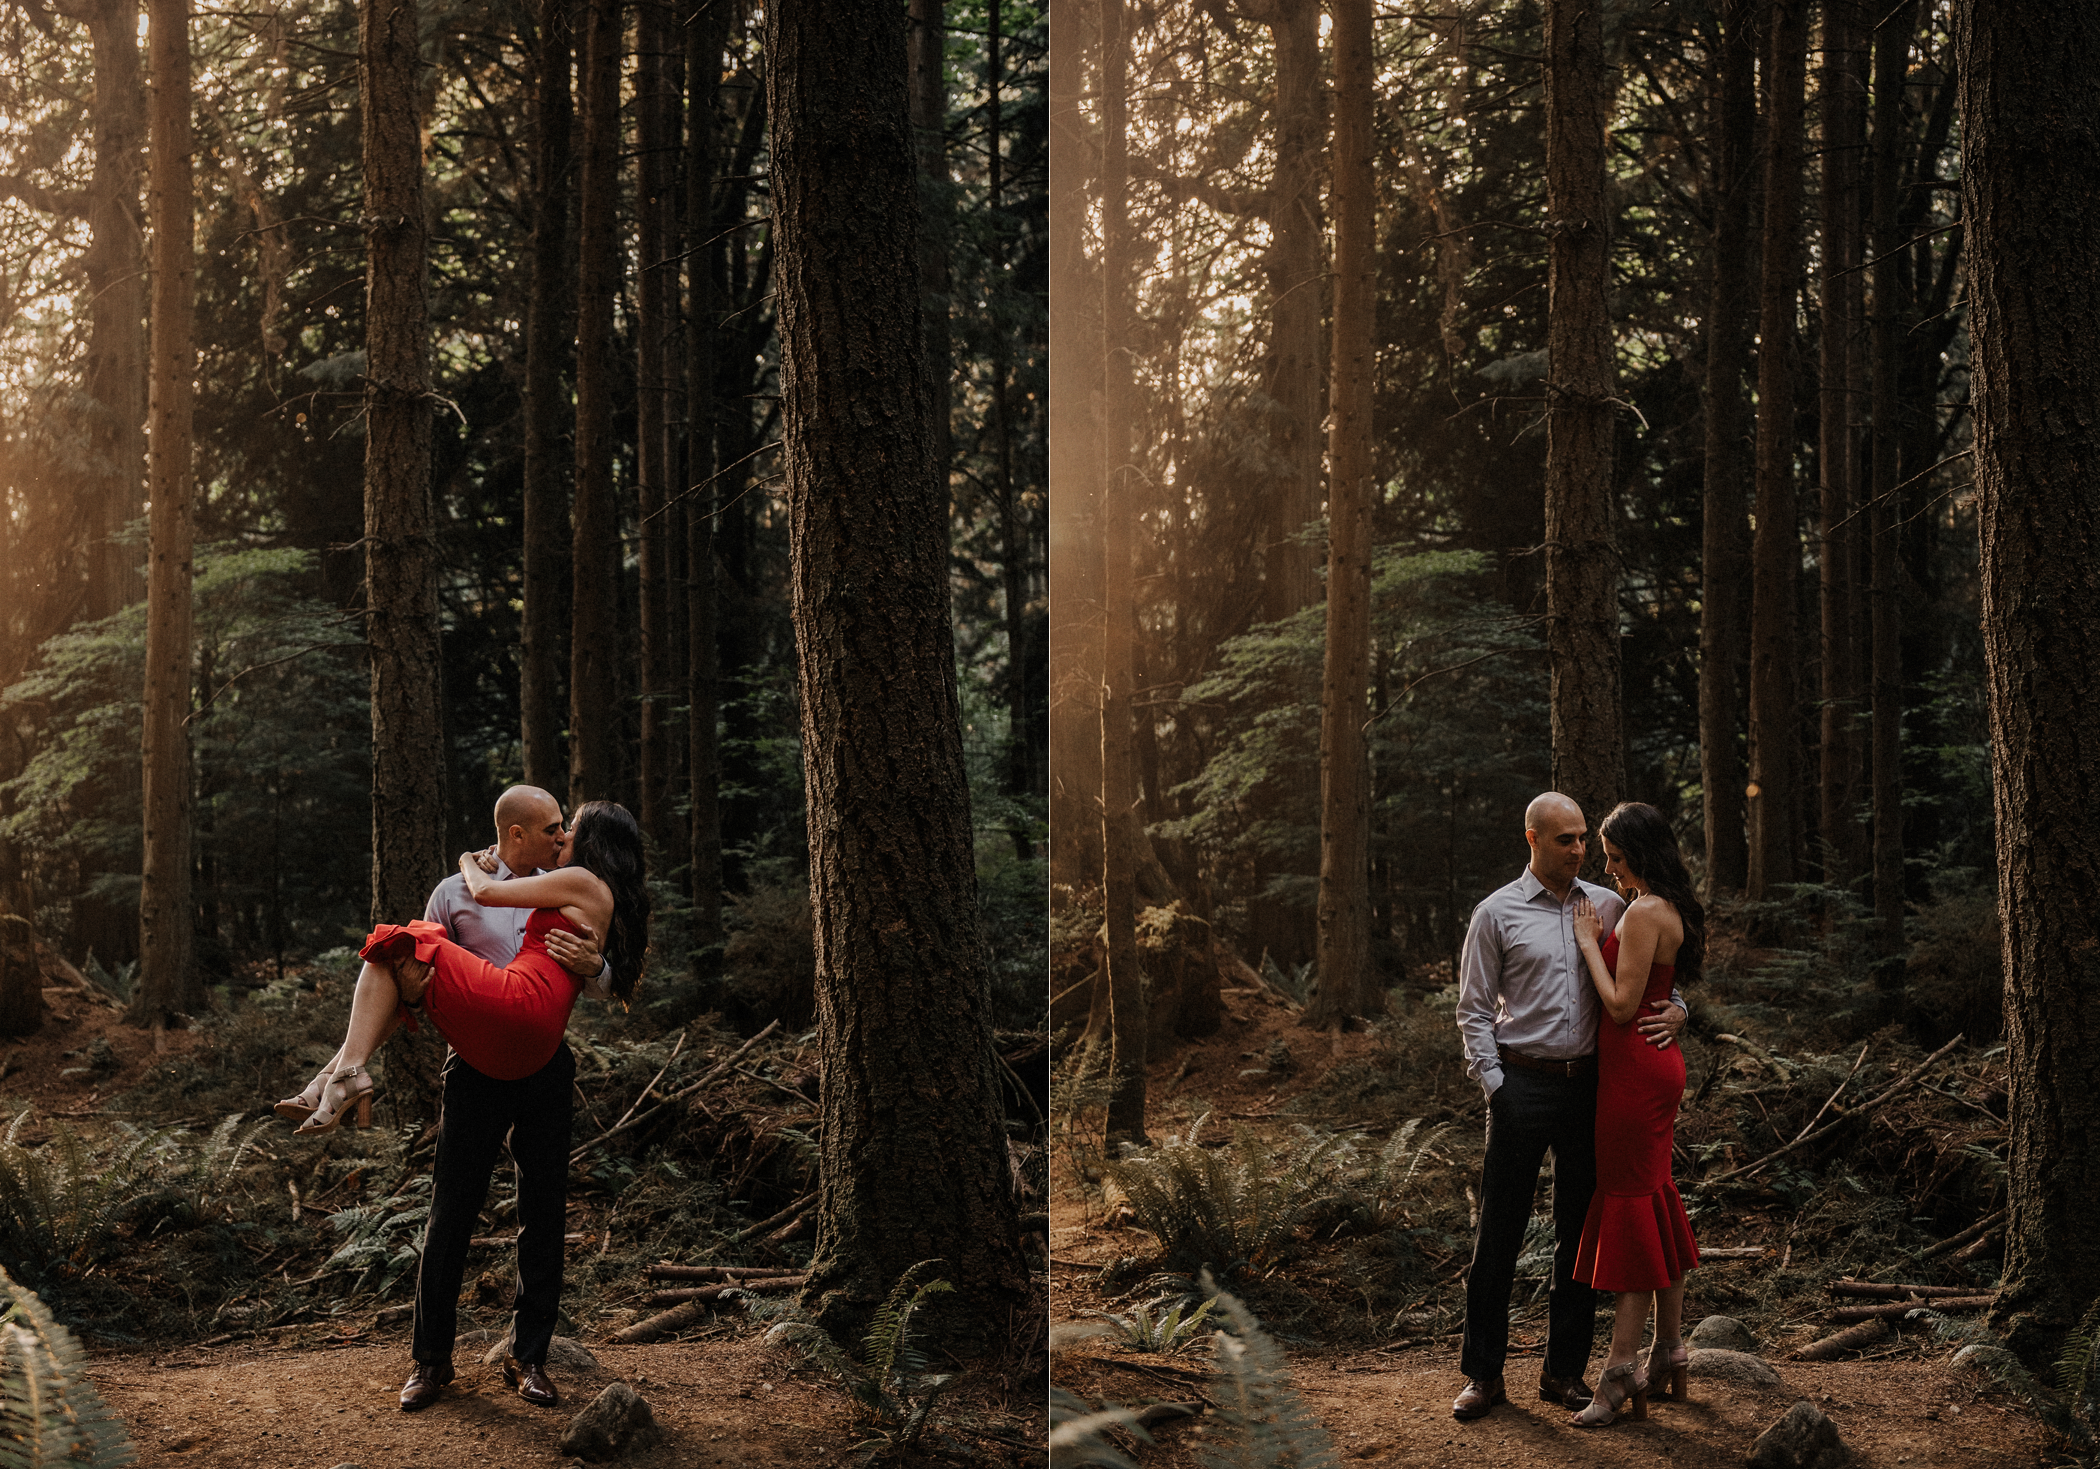 005-kaoverii-silva-AJ-prewedding-vancouver-photography-blog.png